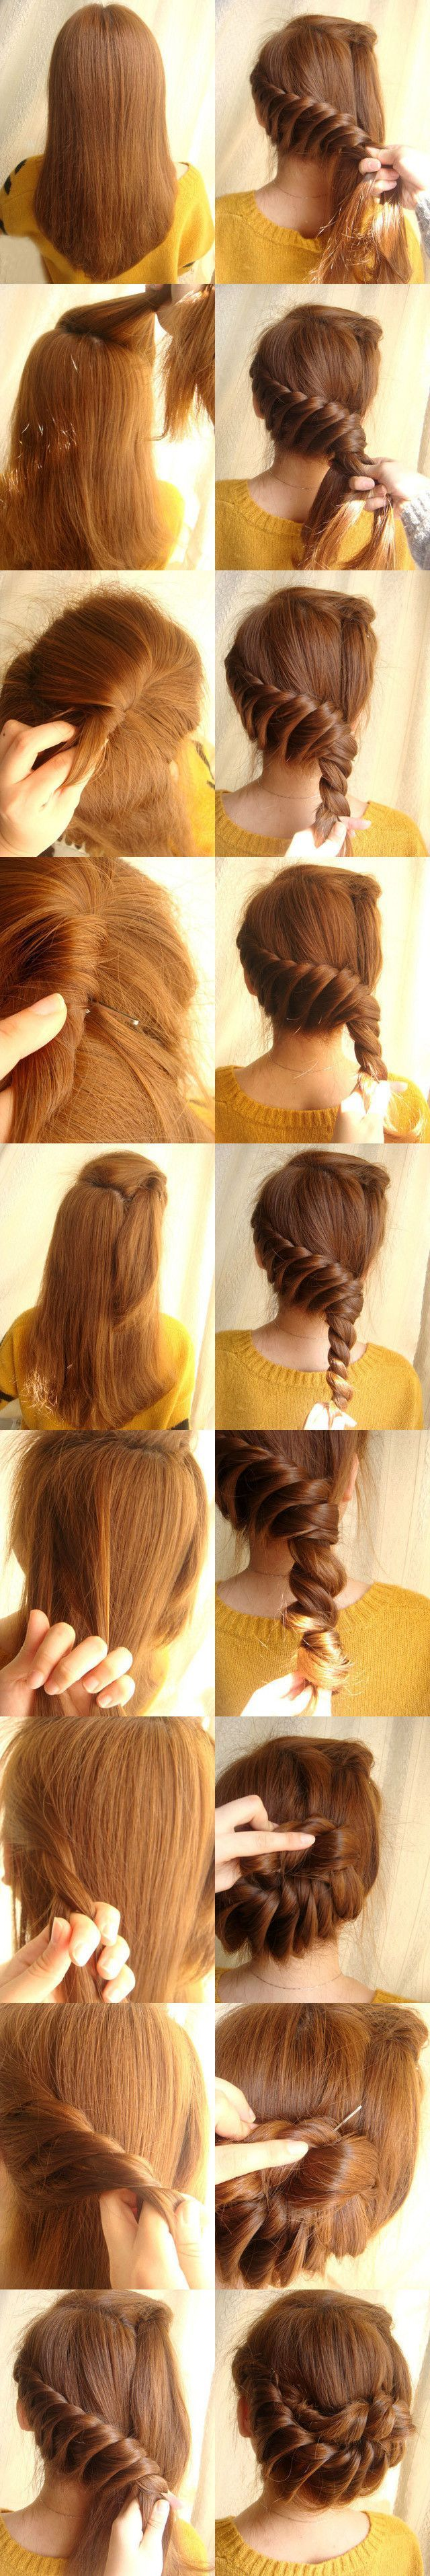 How To Get Summer's 27 Best Hairstyles Sometimes it takes a little work to get that effortless, romantic summer look. Here are 27 styles with how-to diagrams to try for everything from that wedding you have to attend to a day at the beach. A few of these are even for shorter hair.